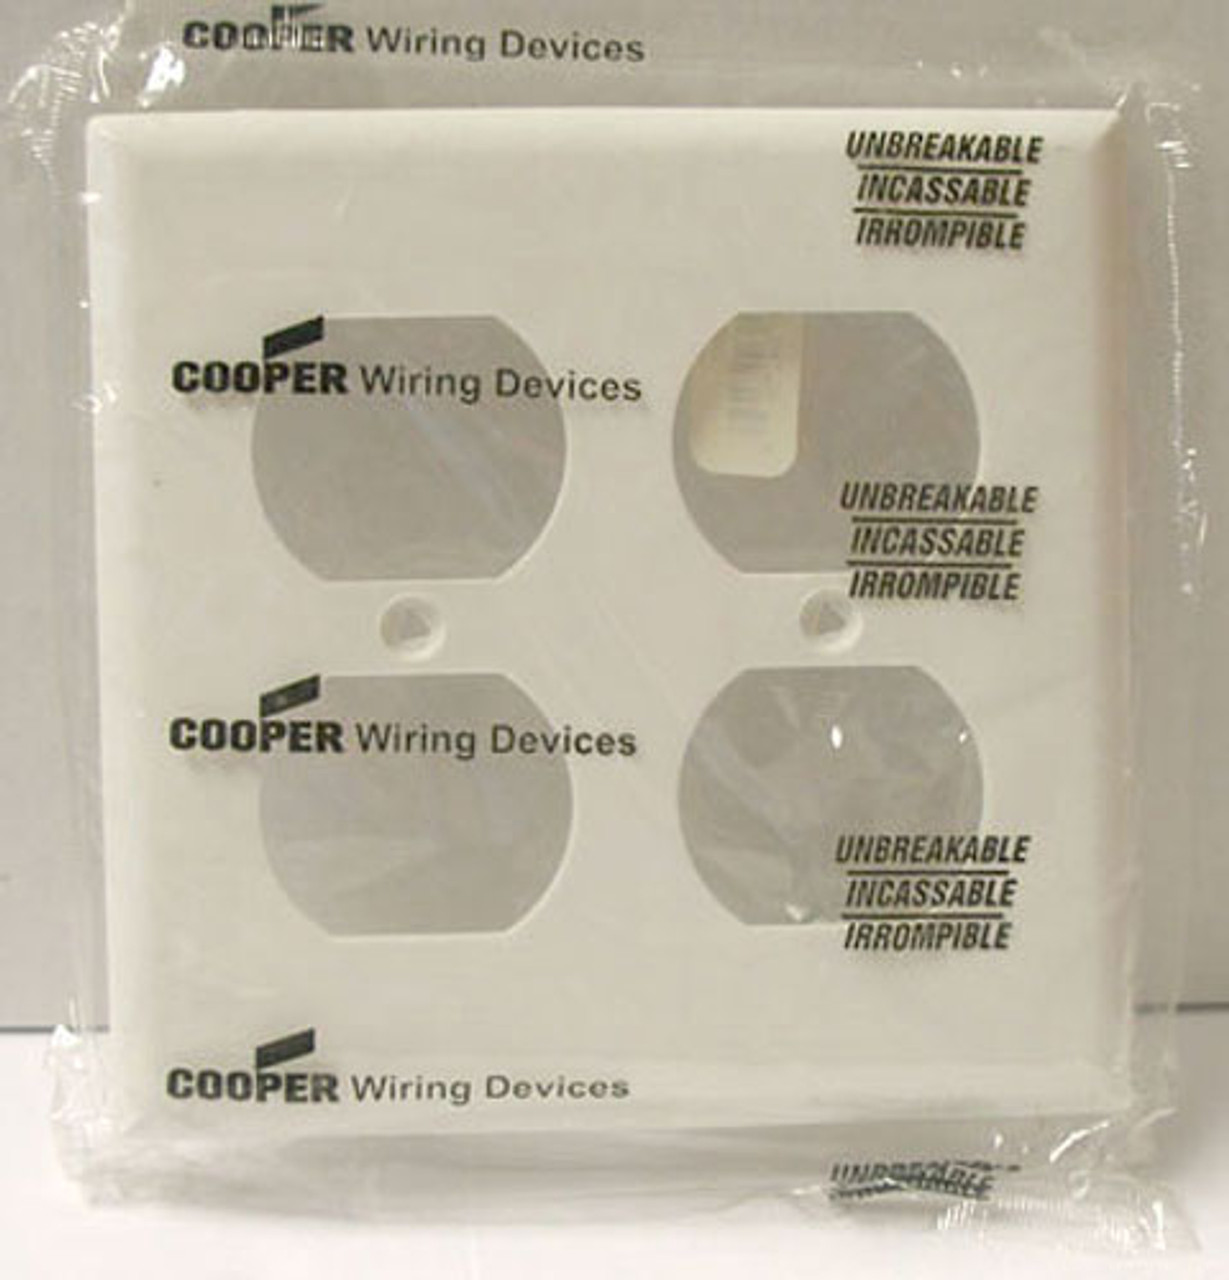 Cooper 5150W 2 Gang White Hosp Receptacle Wallplate (Lot of 20) - New